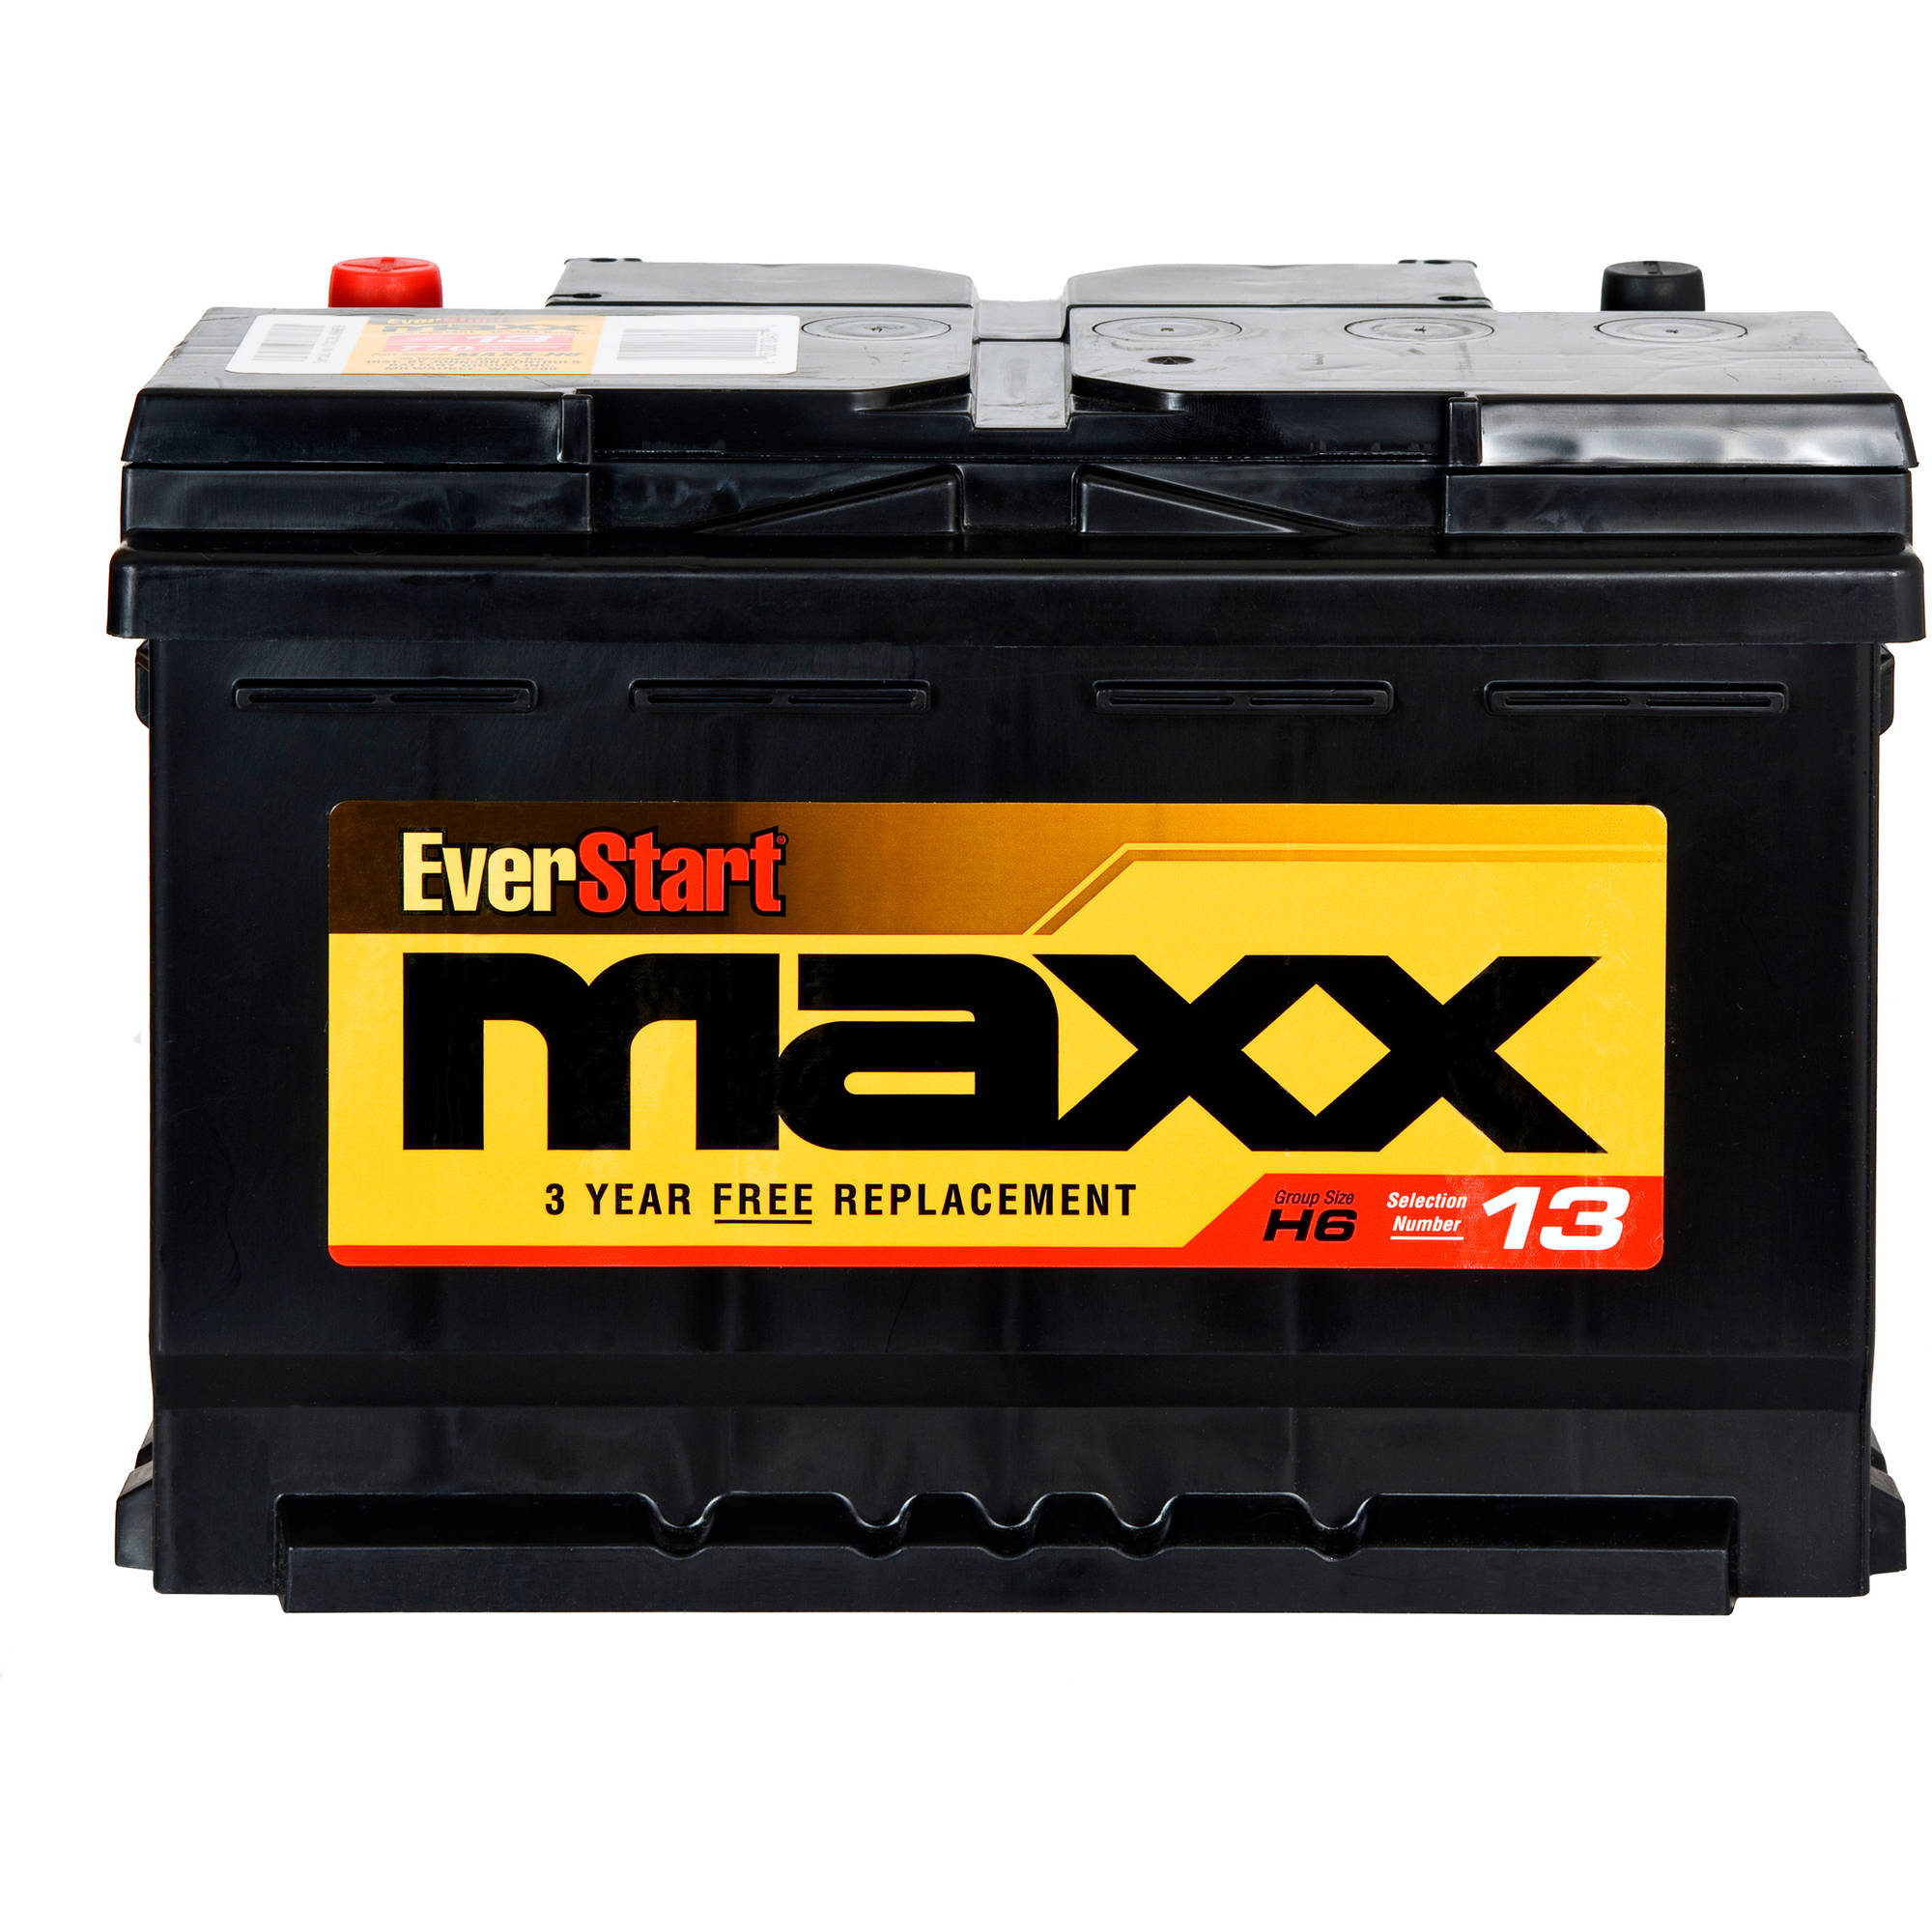 EverStart Maxx Lead Acid Automotive Battery, Group H6